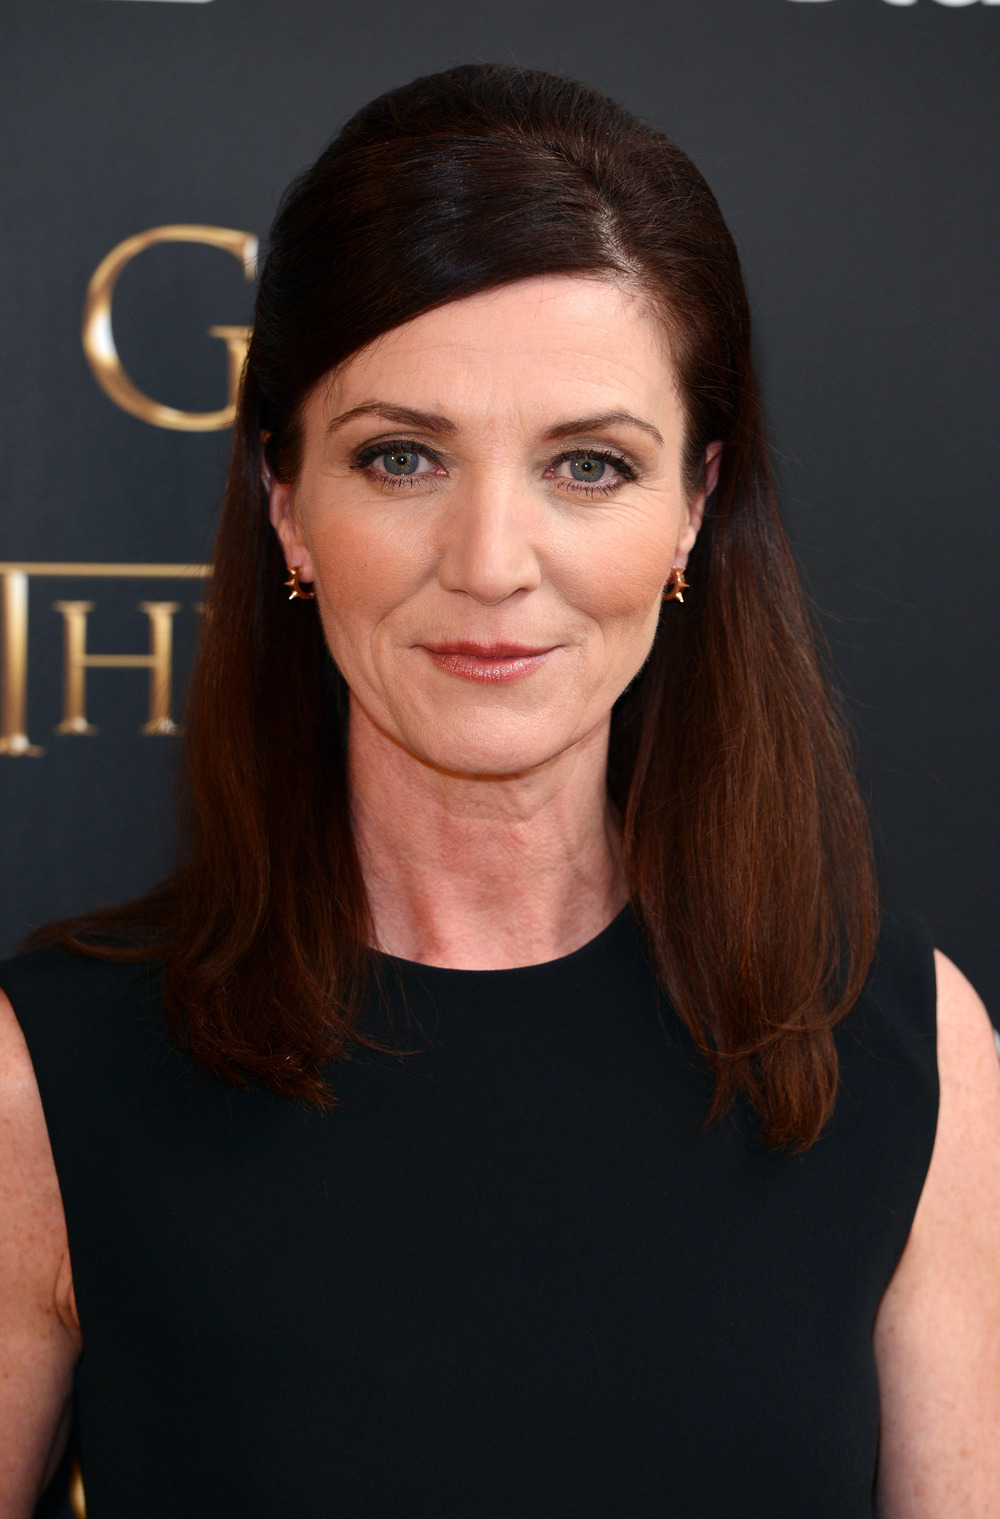 Who Is Michelle Fairley? Five Fun Facts About the Game of Thrones Star